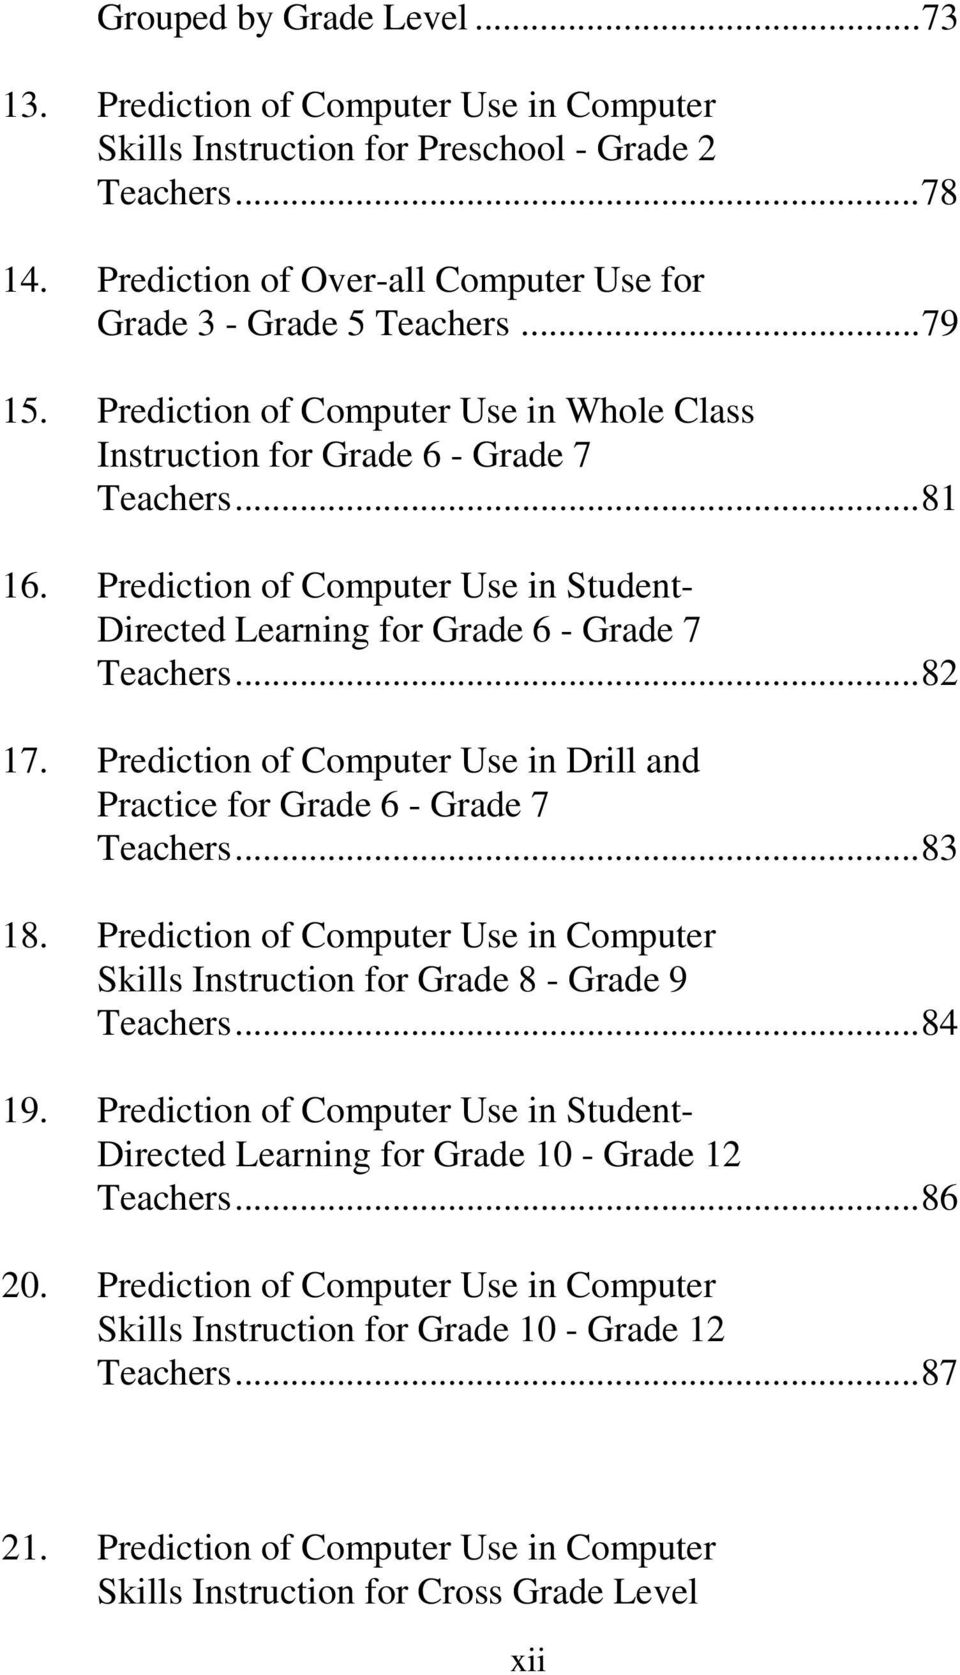 Prediction of Computer Use in Drill and Practice for Grade 6 - Grade 7 Teachers...83 18. Prediction of Computer Use in Computer Skills Instruction for Grade 8 - Grade 9 Teachers...84 19.